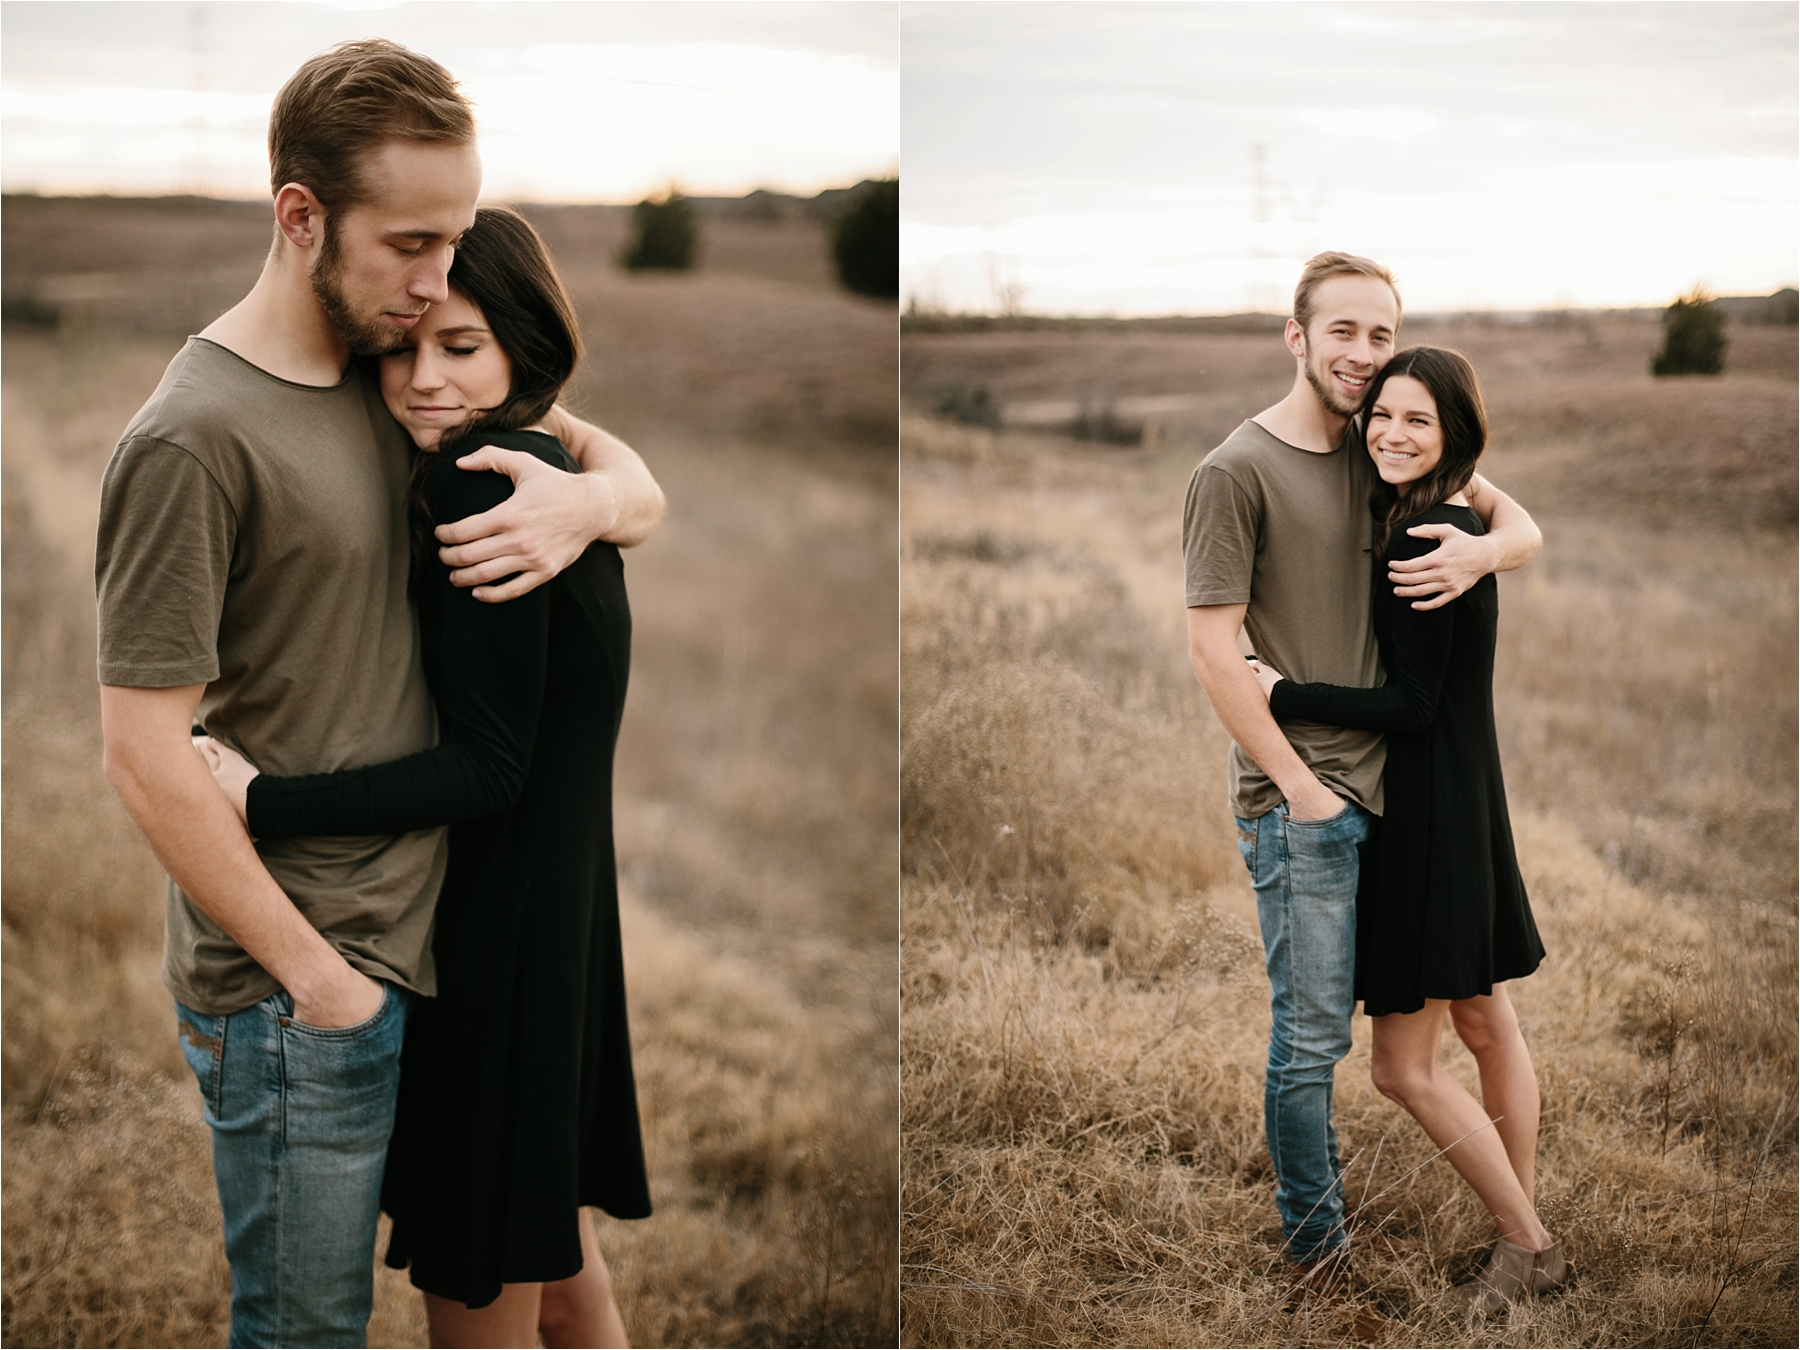 Trey + Phoebe __ a playful, intimate engagement session with dark_neutral outfit inspiration by North Texas Wedding Photographer Rachel Meagan Photography __ 18